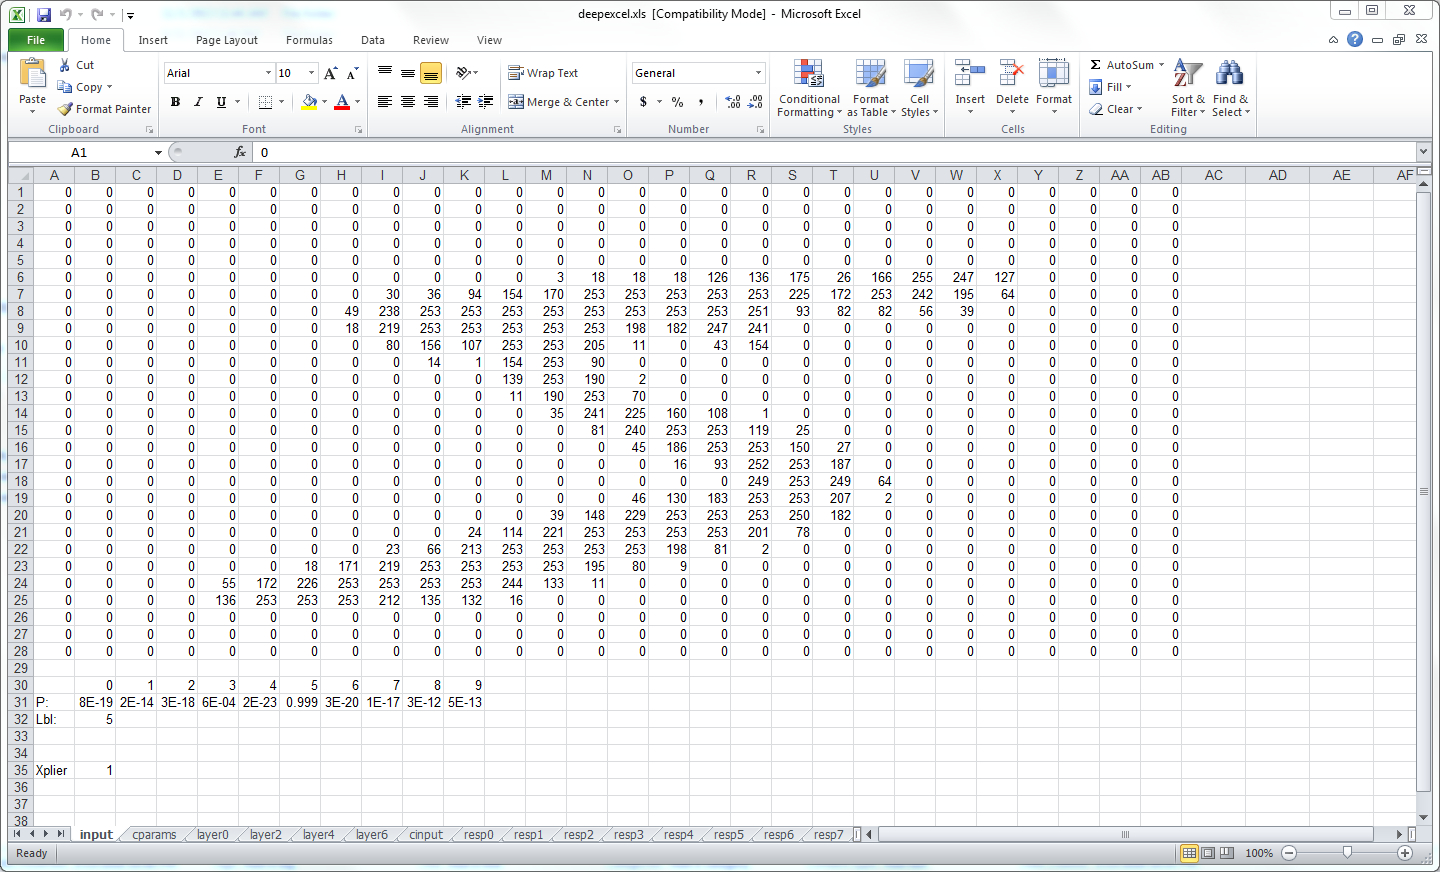 Learn How To Use Spreadsheets Inside Deep Spreadsheets With Excelnet